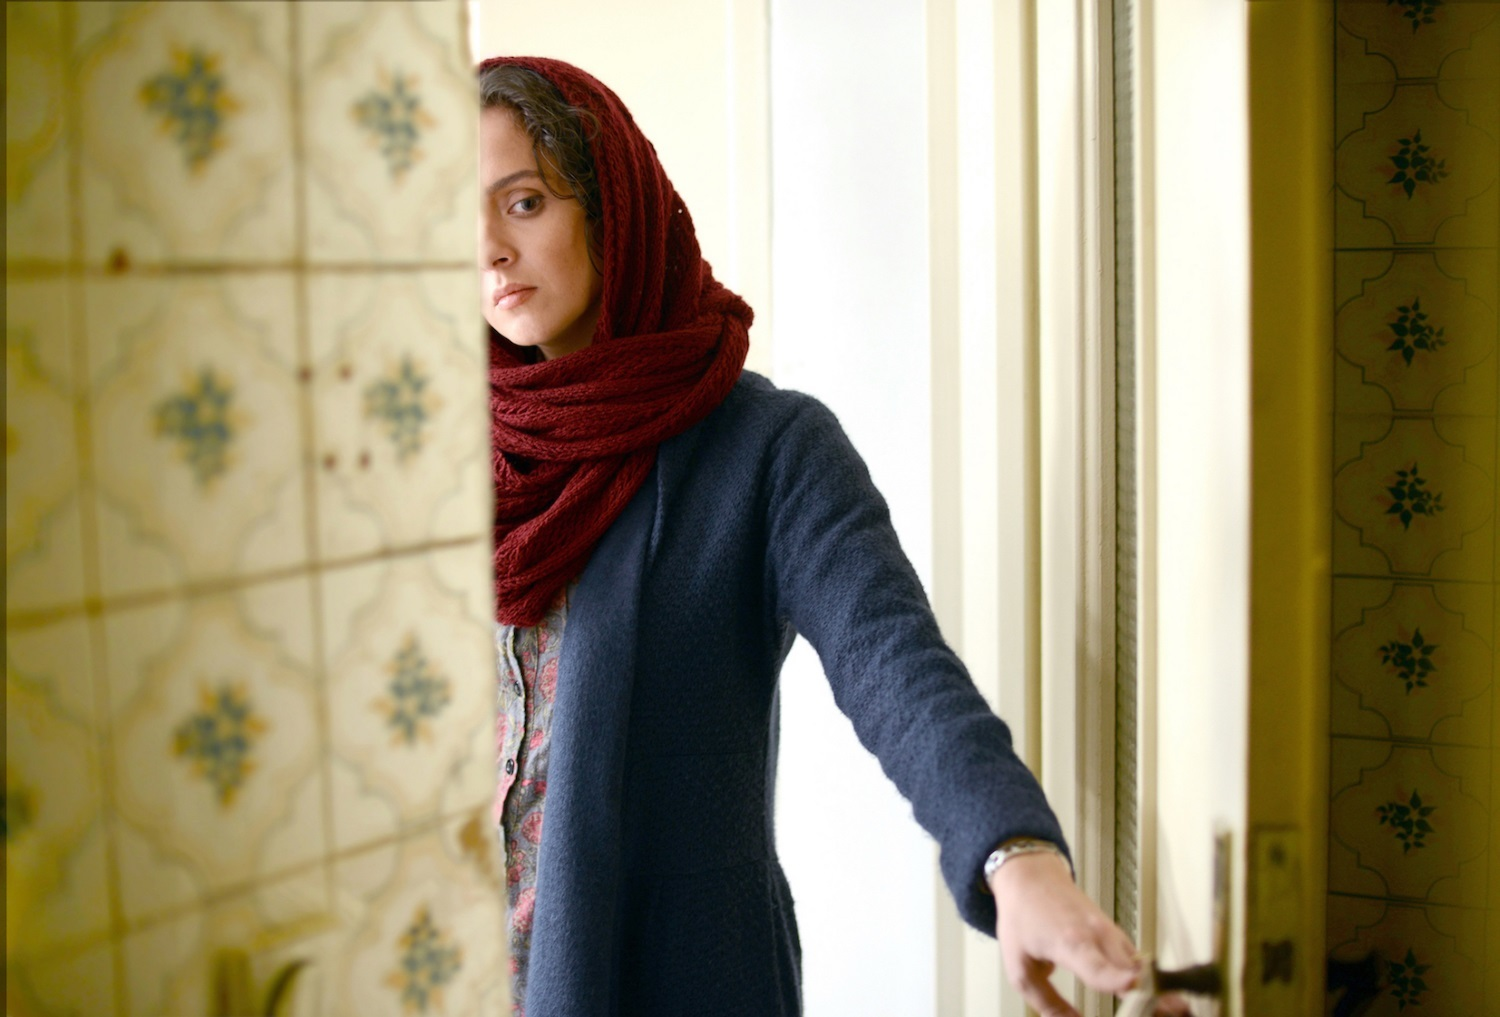 『セールスマン』 (C)MEMENTOFILMS PRODUCTION?ASGHAR FARHADI PRODUCTION?ARTE FRANCE CINEMA 2016